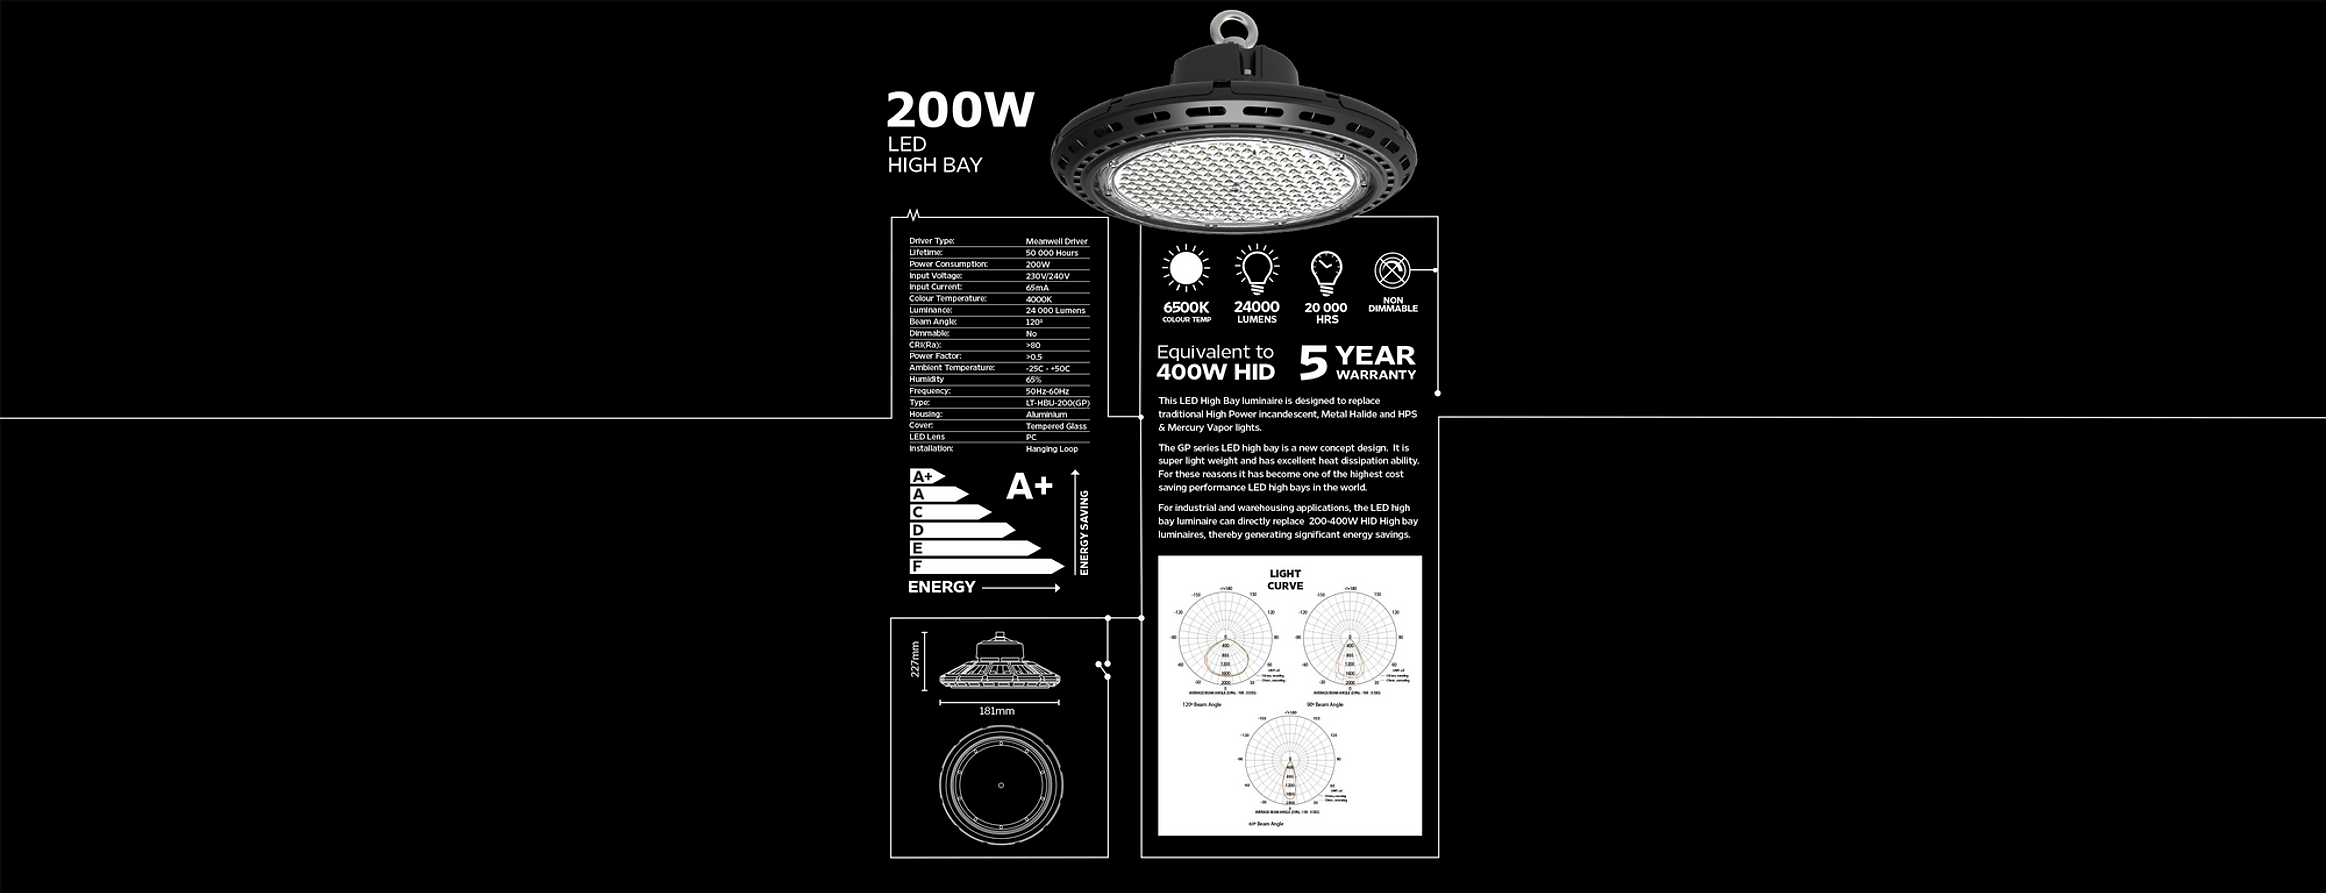 amplux-led-high-bay-200w.png